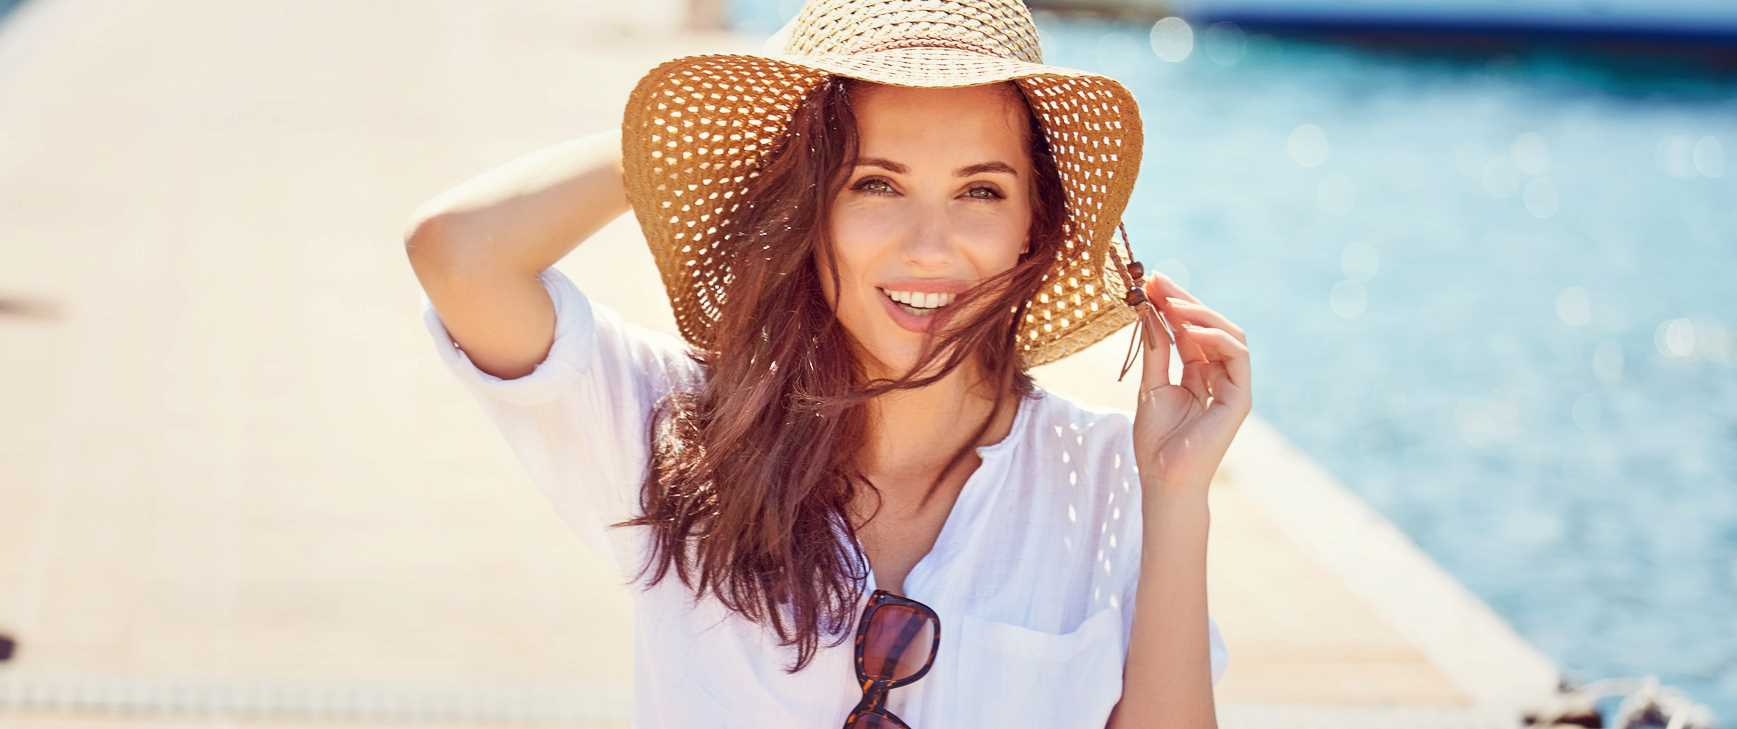 Our May 2018 Specials - Photofacial in Springfield Missouri